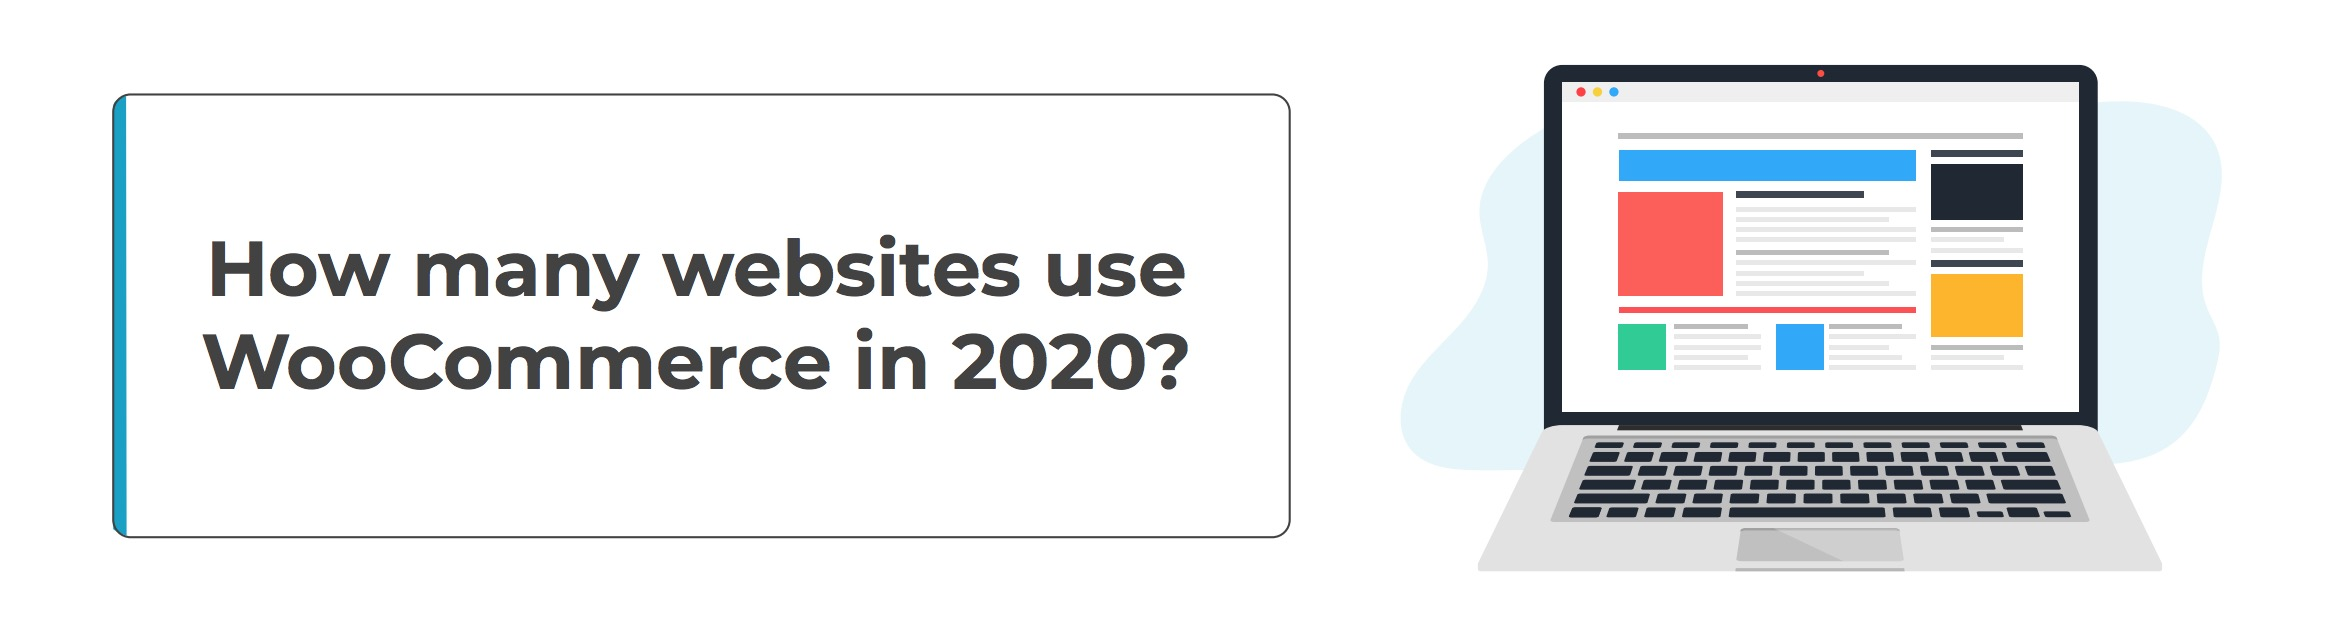 How many websites use WooCommerce in 2020?